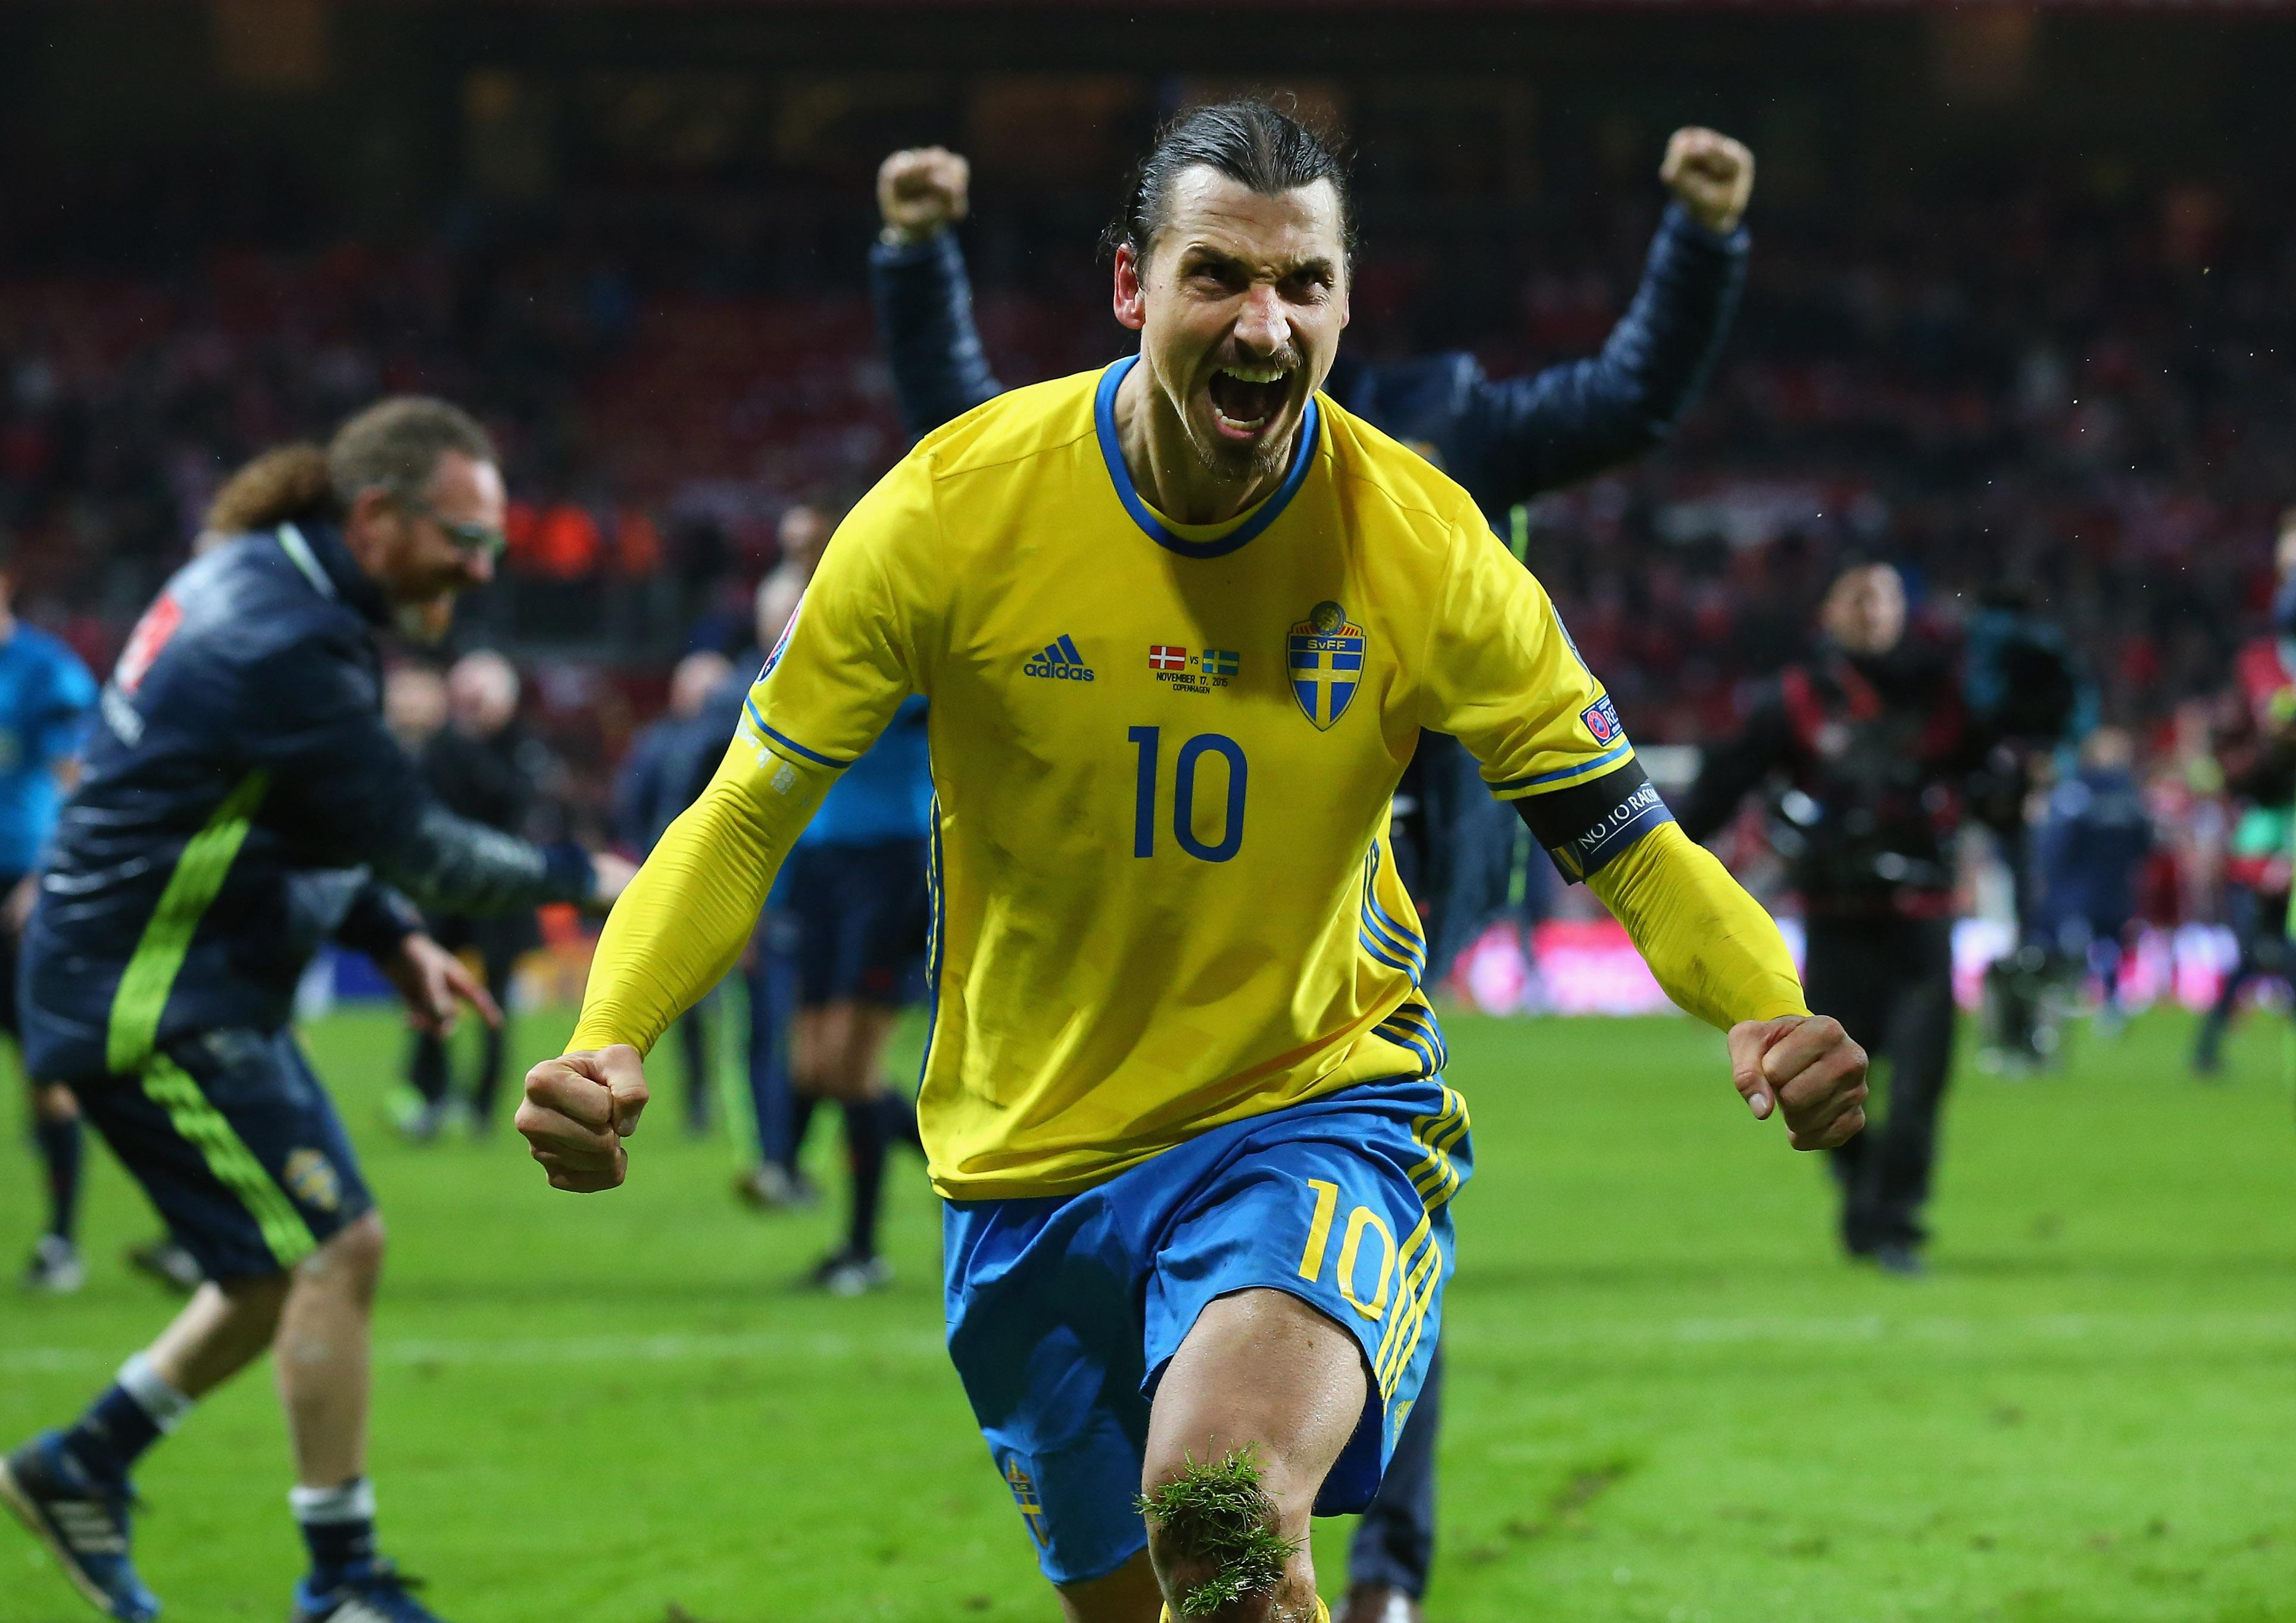 Will Zlatan Ibrahimovic play for Sweden at 2018 World Cup?